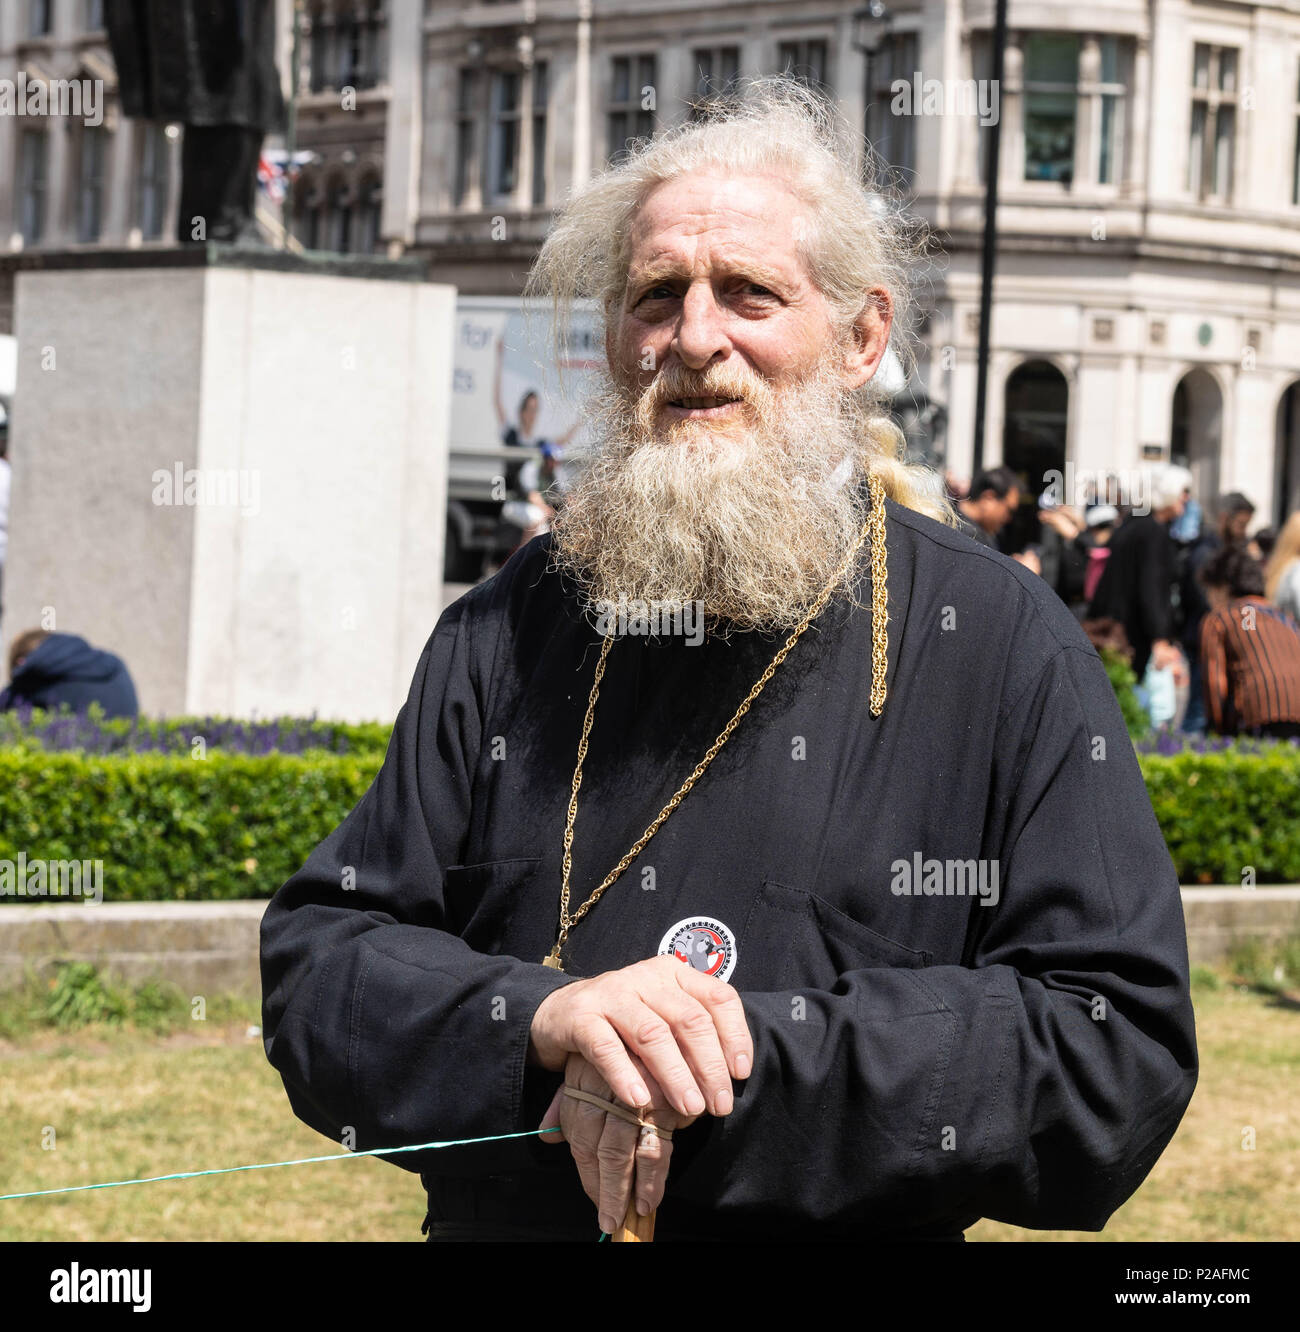 London 14th June 2018, End live animal transport protest on Parliament Square, London Dr Christina Nellist, Eastern Orthodox Theologian, at the protest  Credit Ian Davidson/Alamy Live News Stock Photo